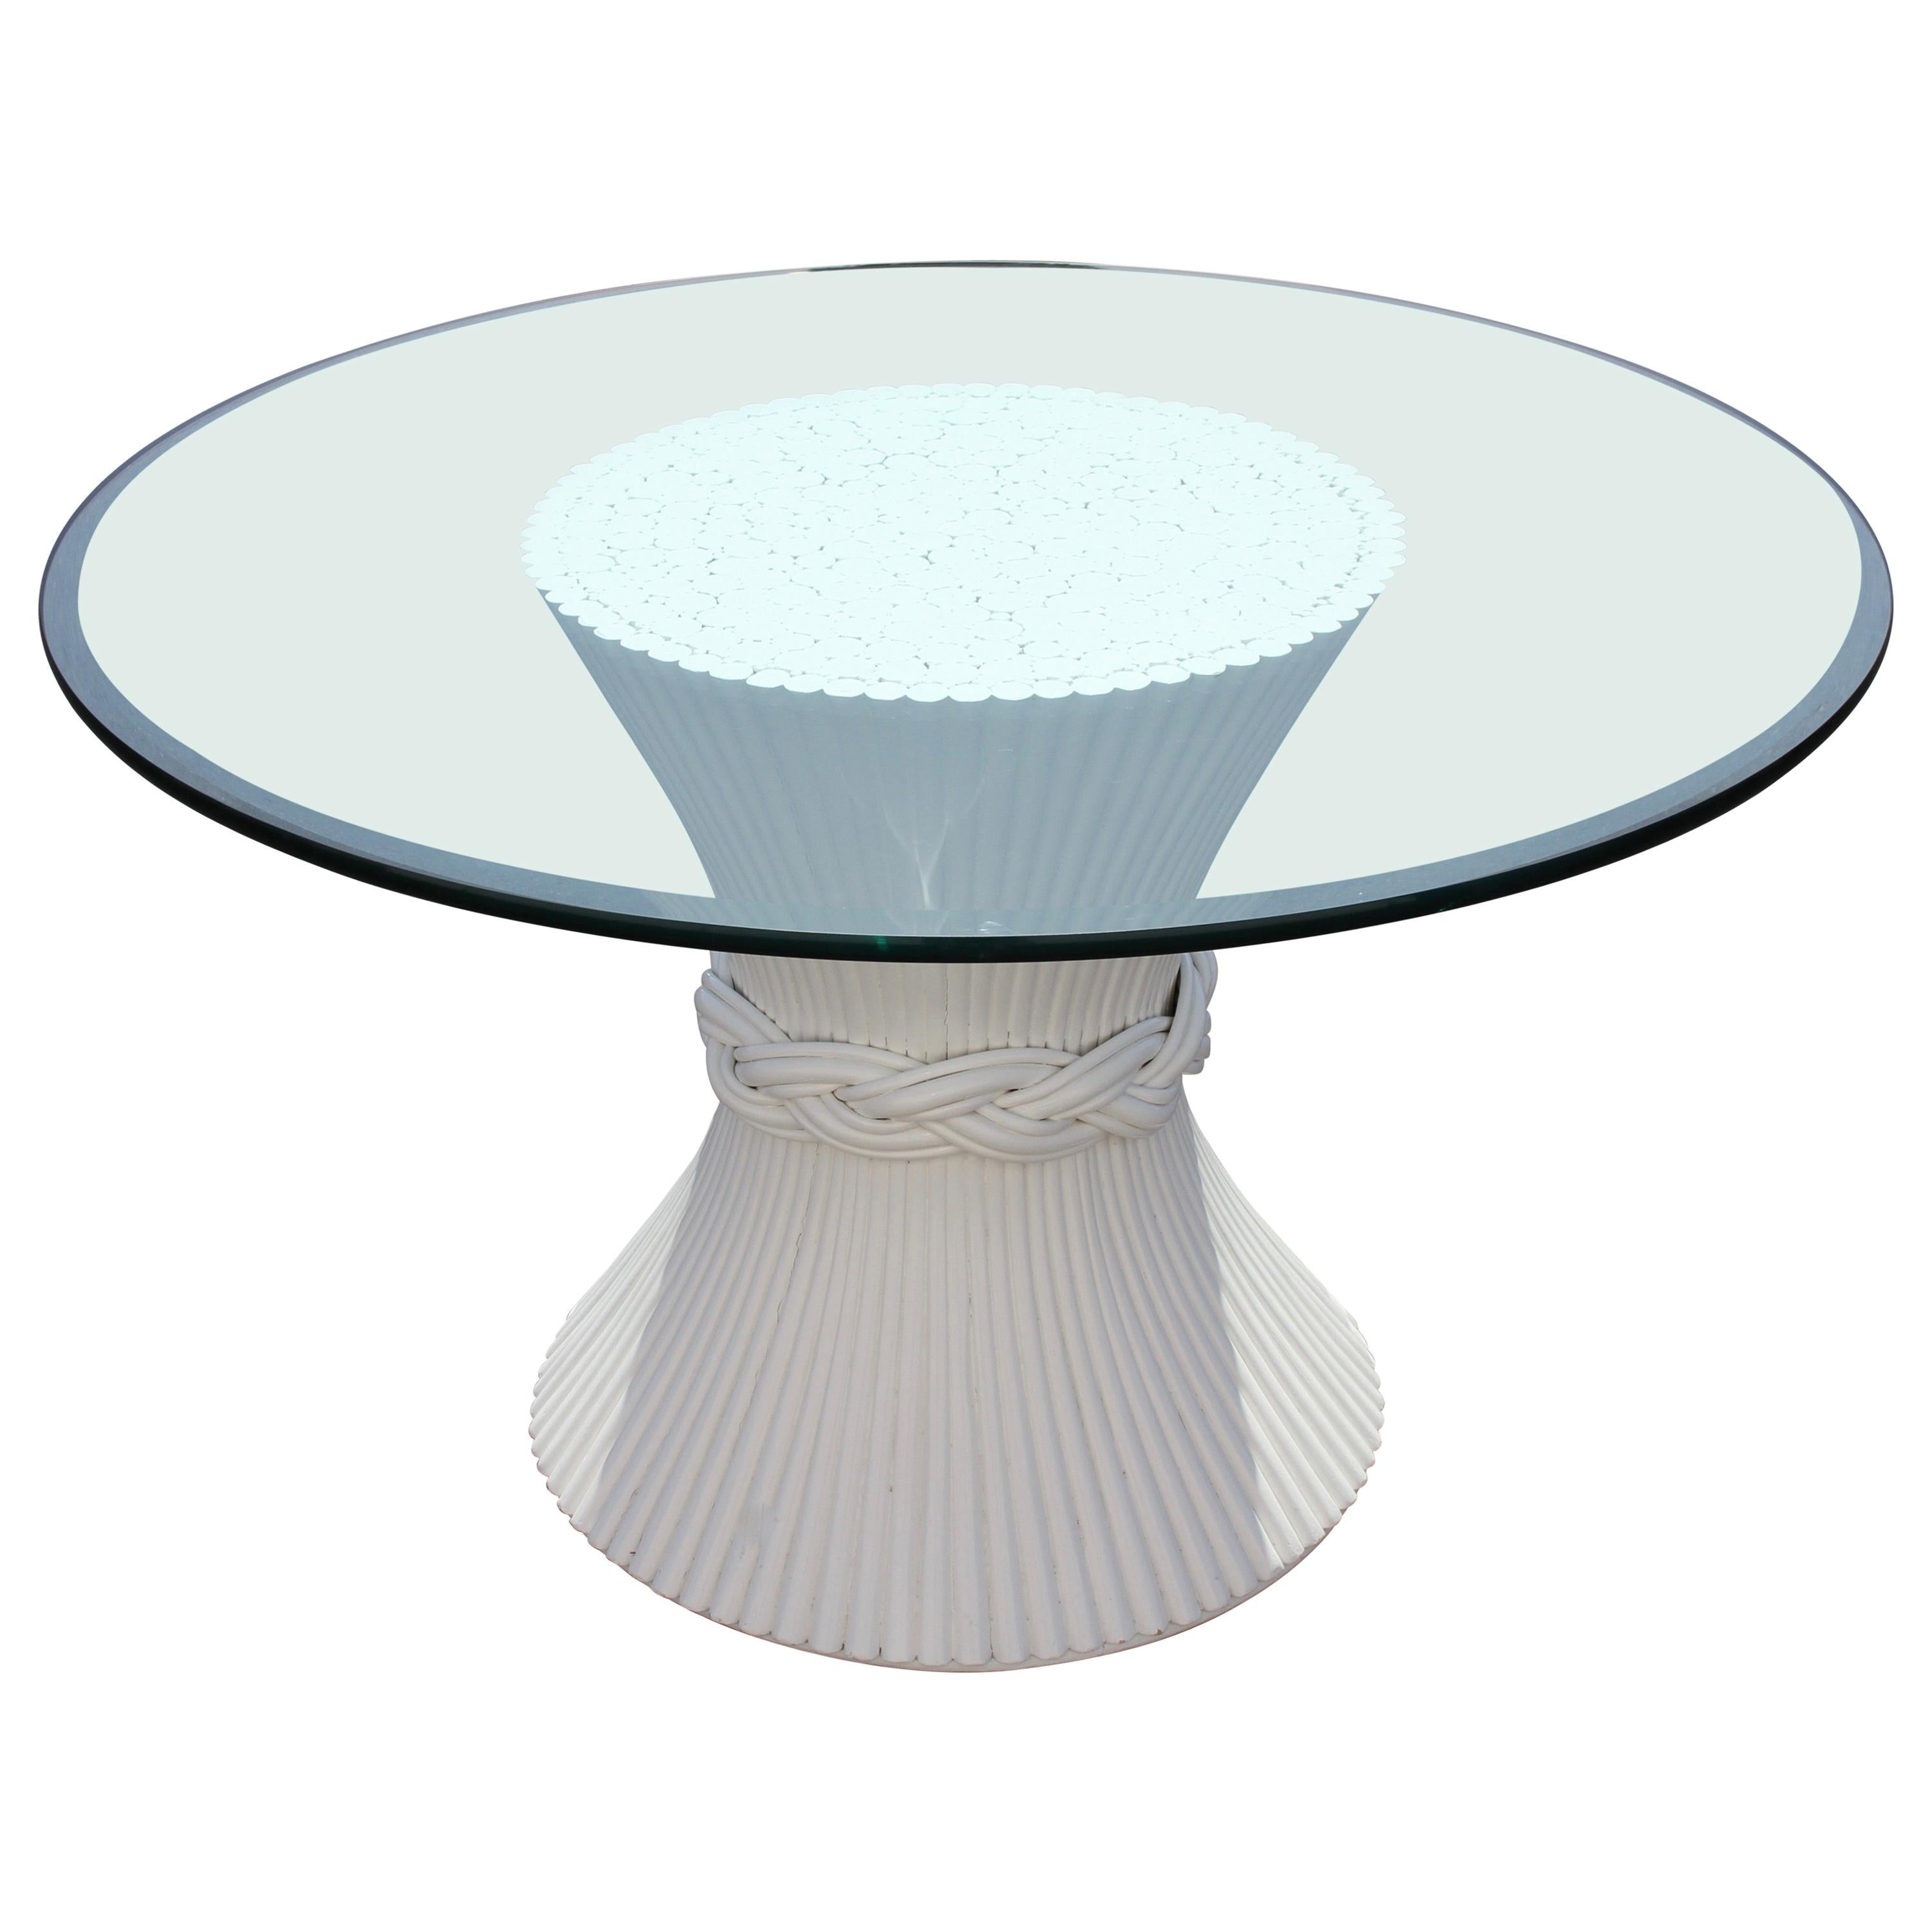 Vintage McGuire Rattan Sheaf of Wheat Form Dining Table, Original White Lacquer